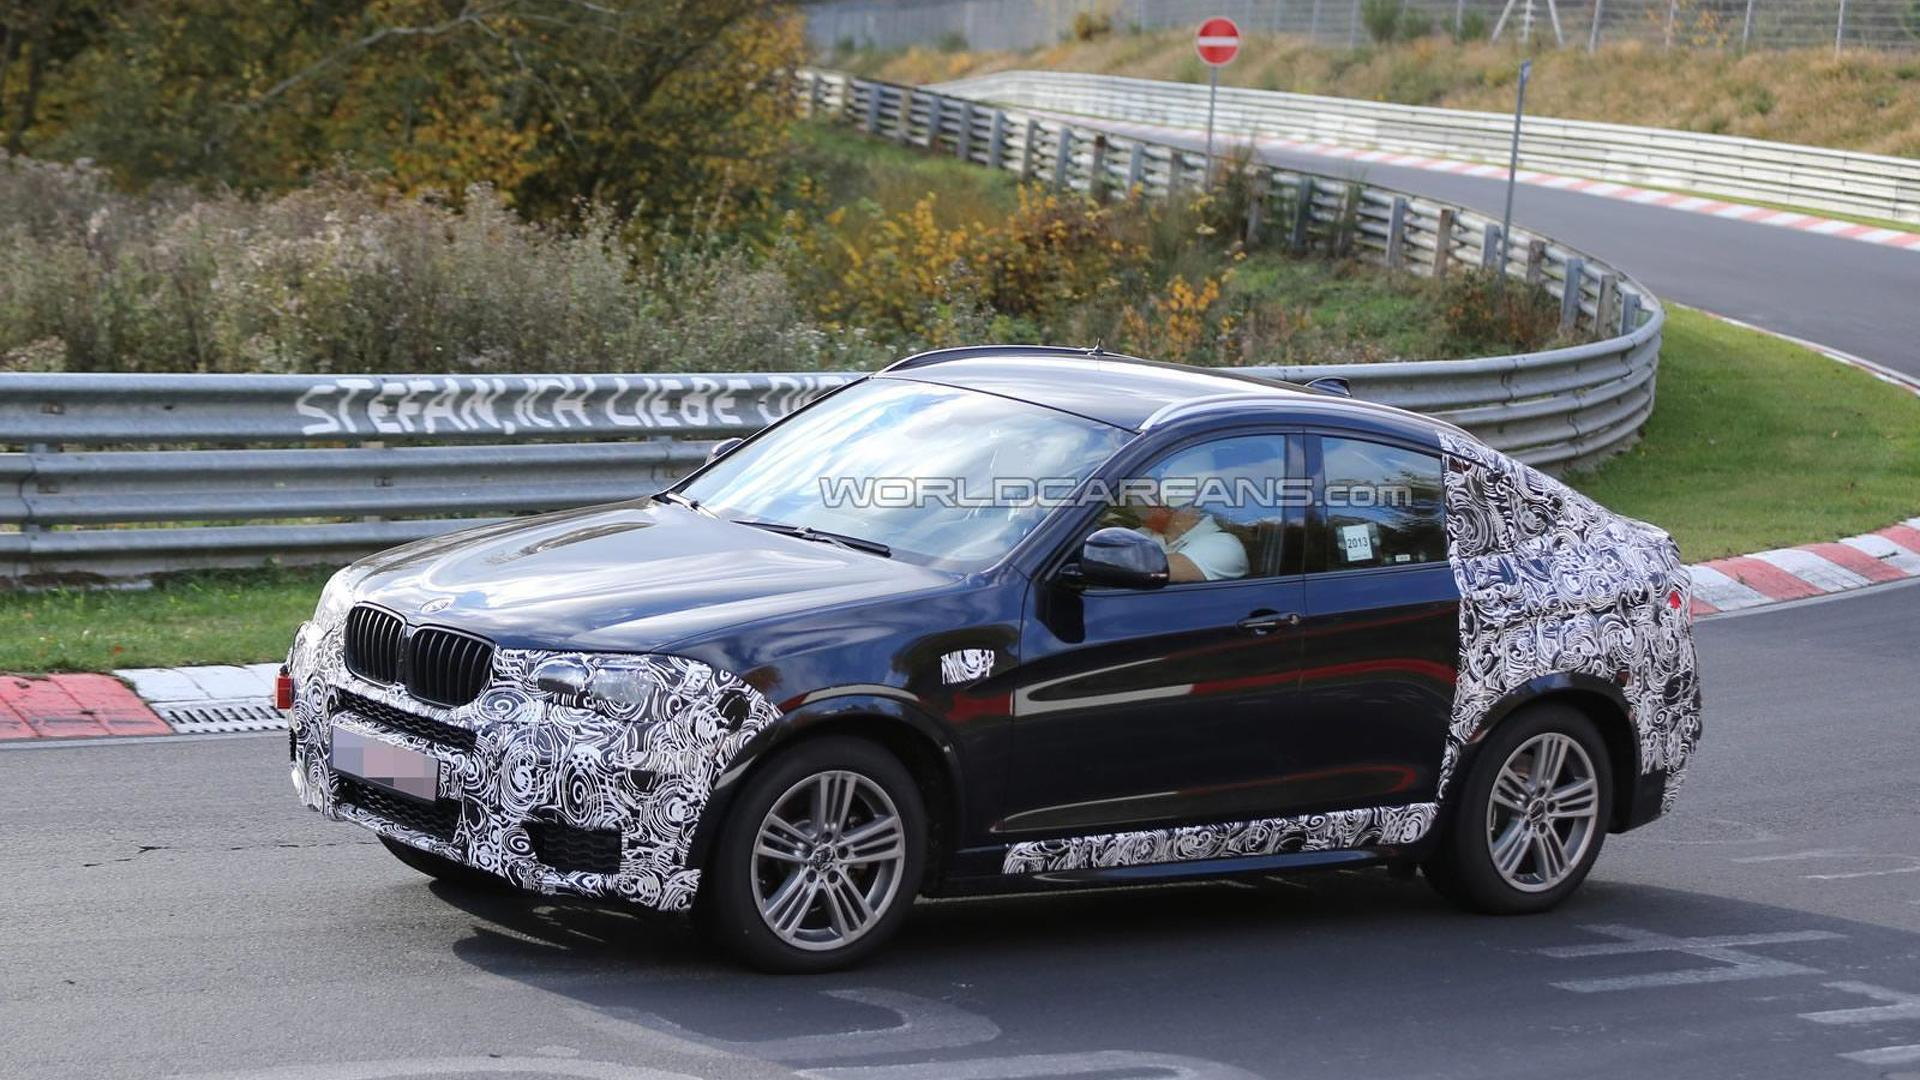 2014 BMW X4 spied wearing less camouflage